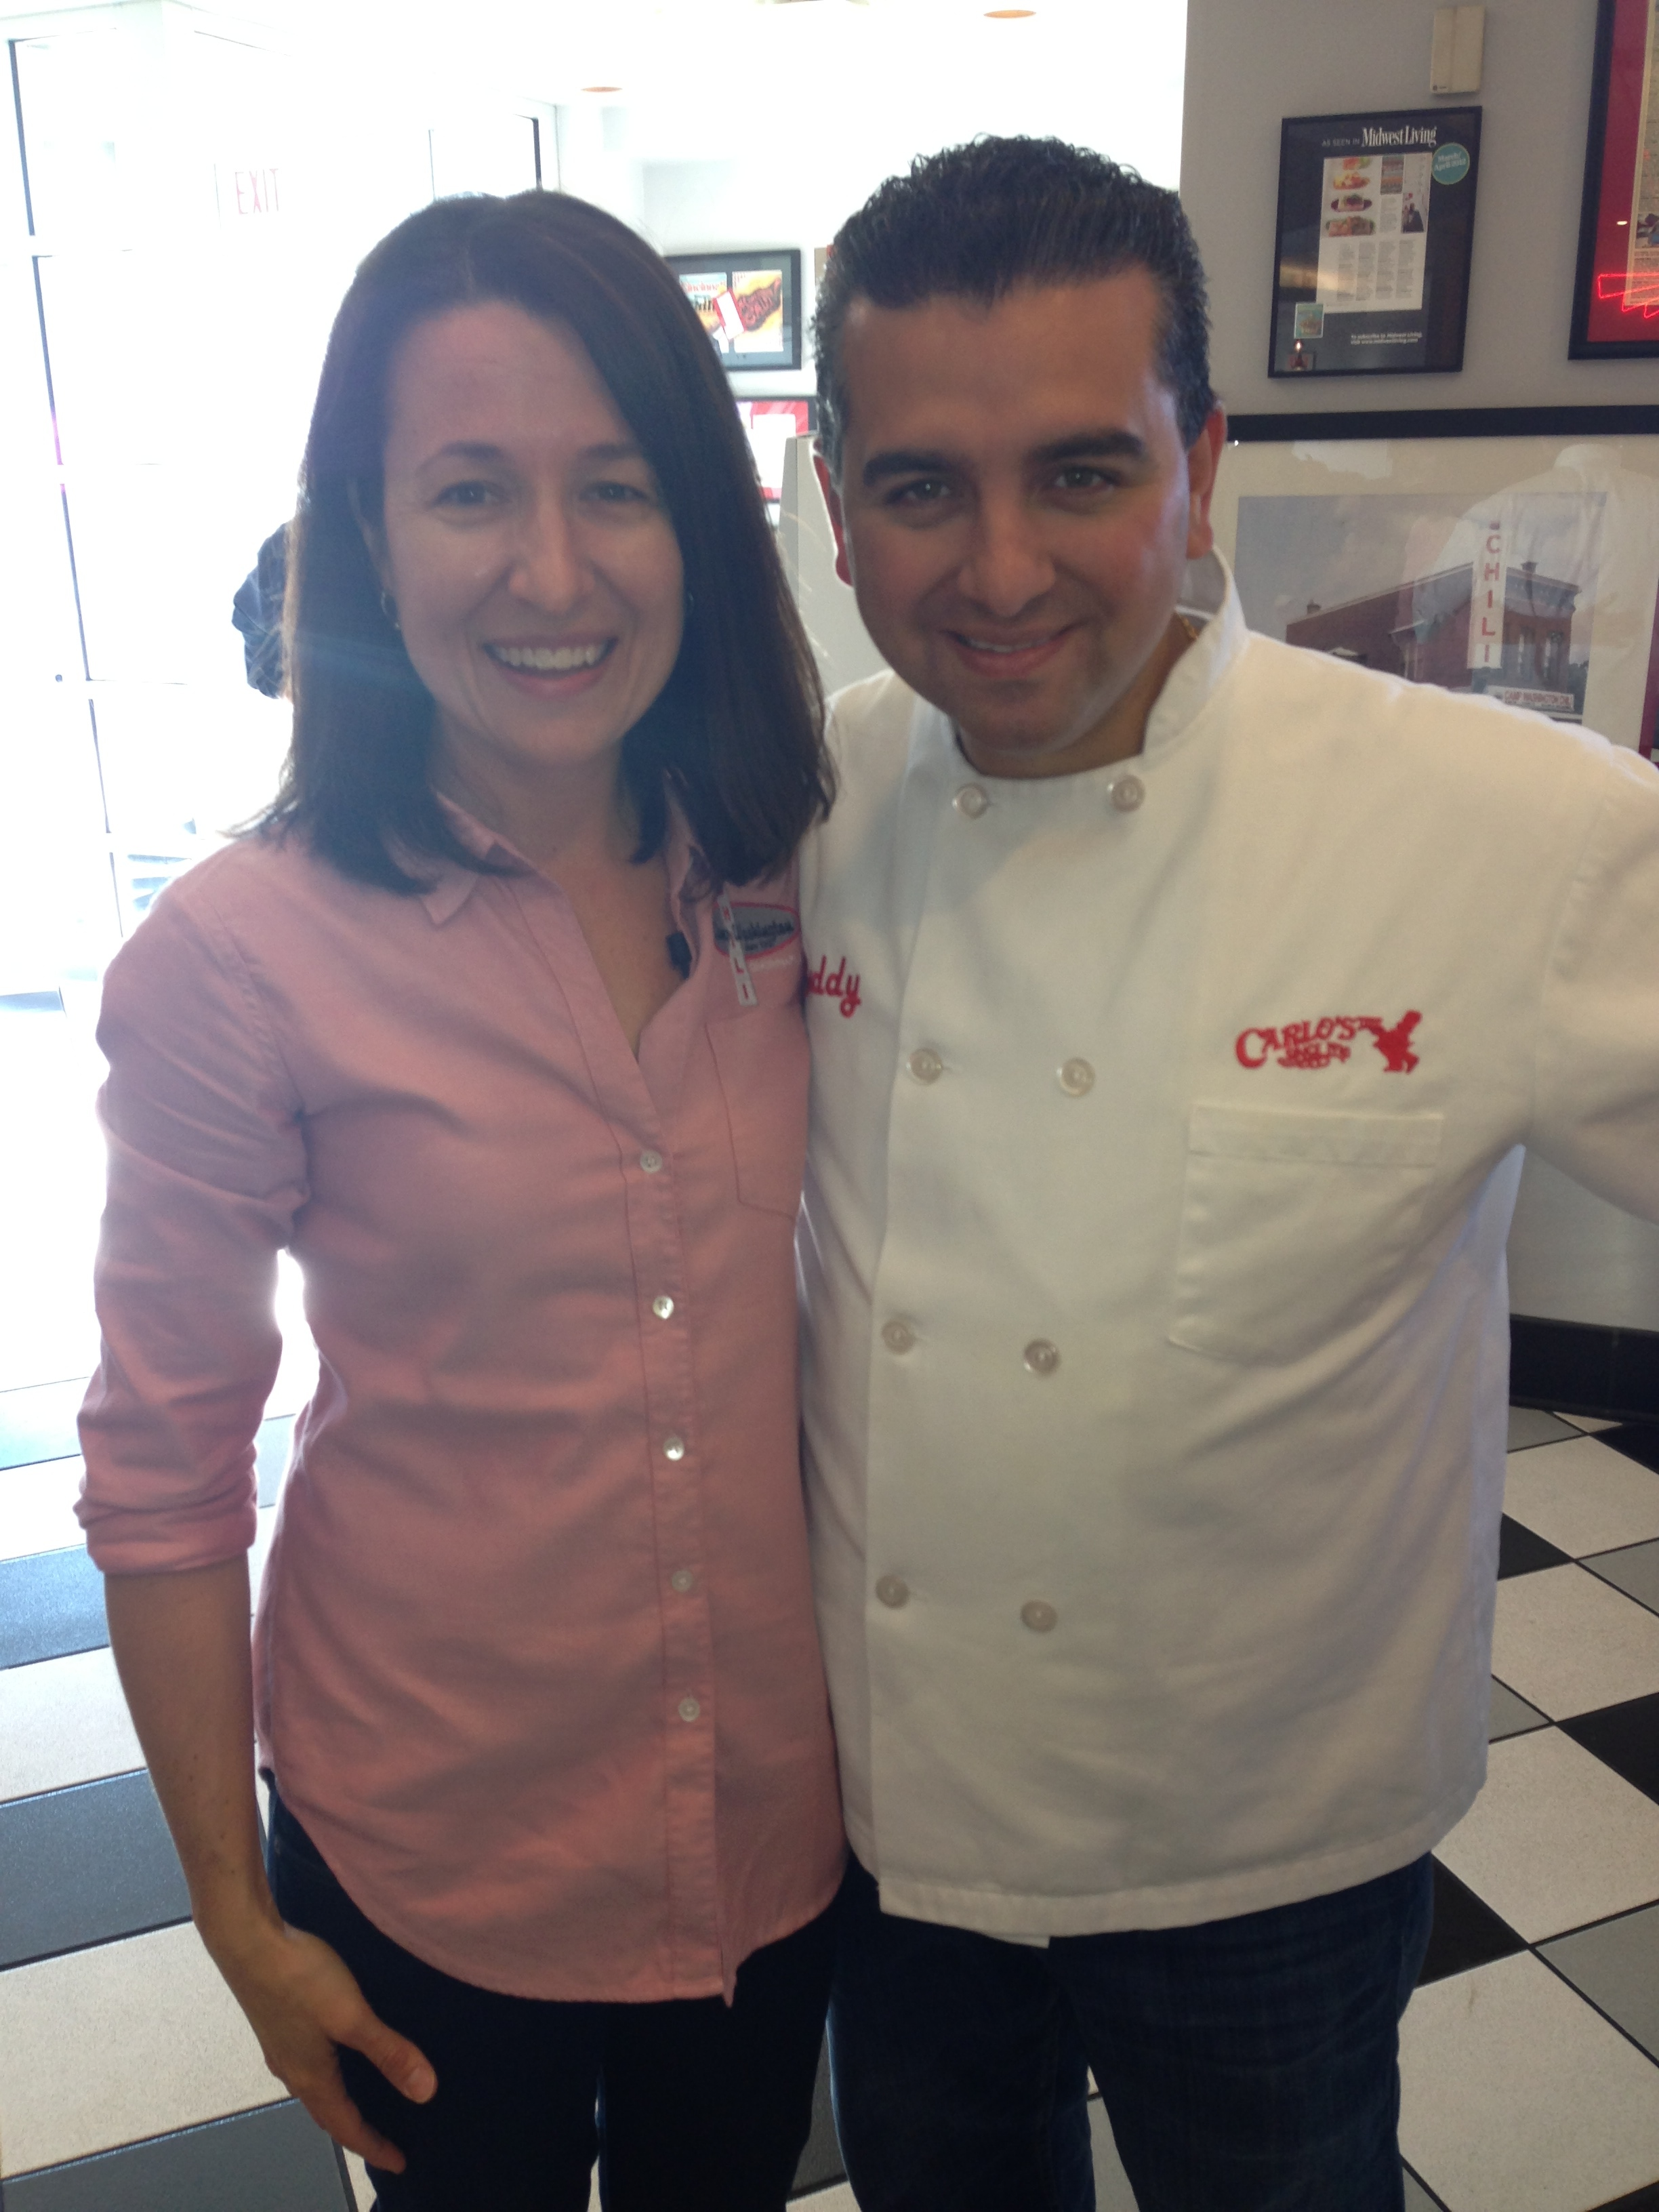 CWC's Maria Papakirk with Buddy 'Cake Boss' Valastro